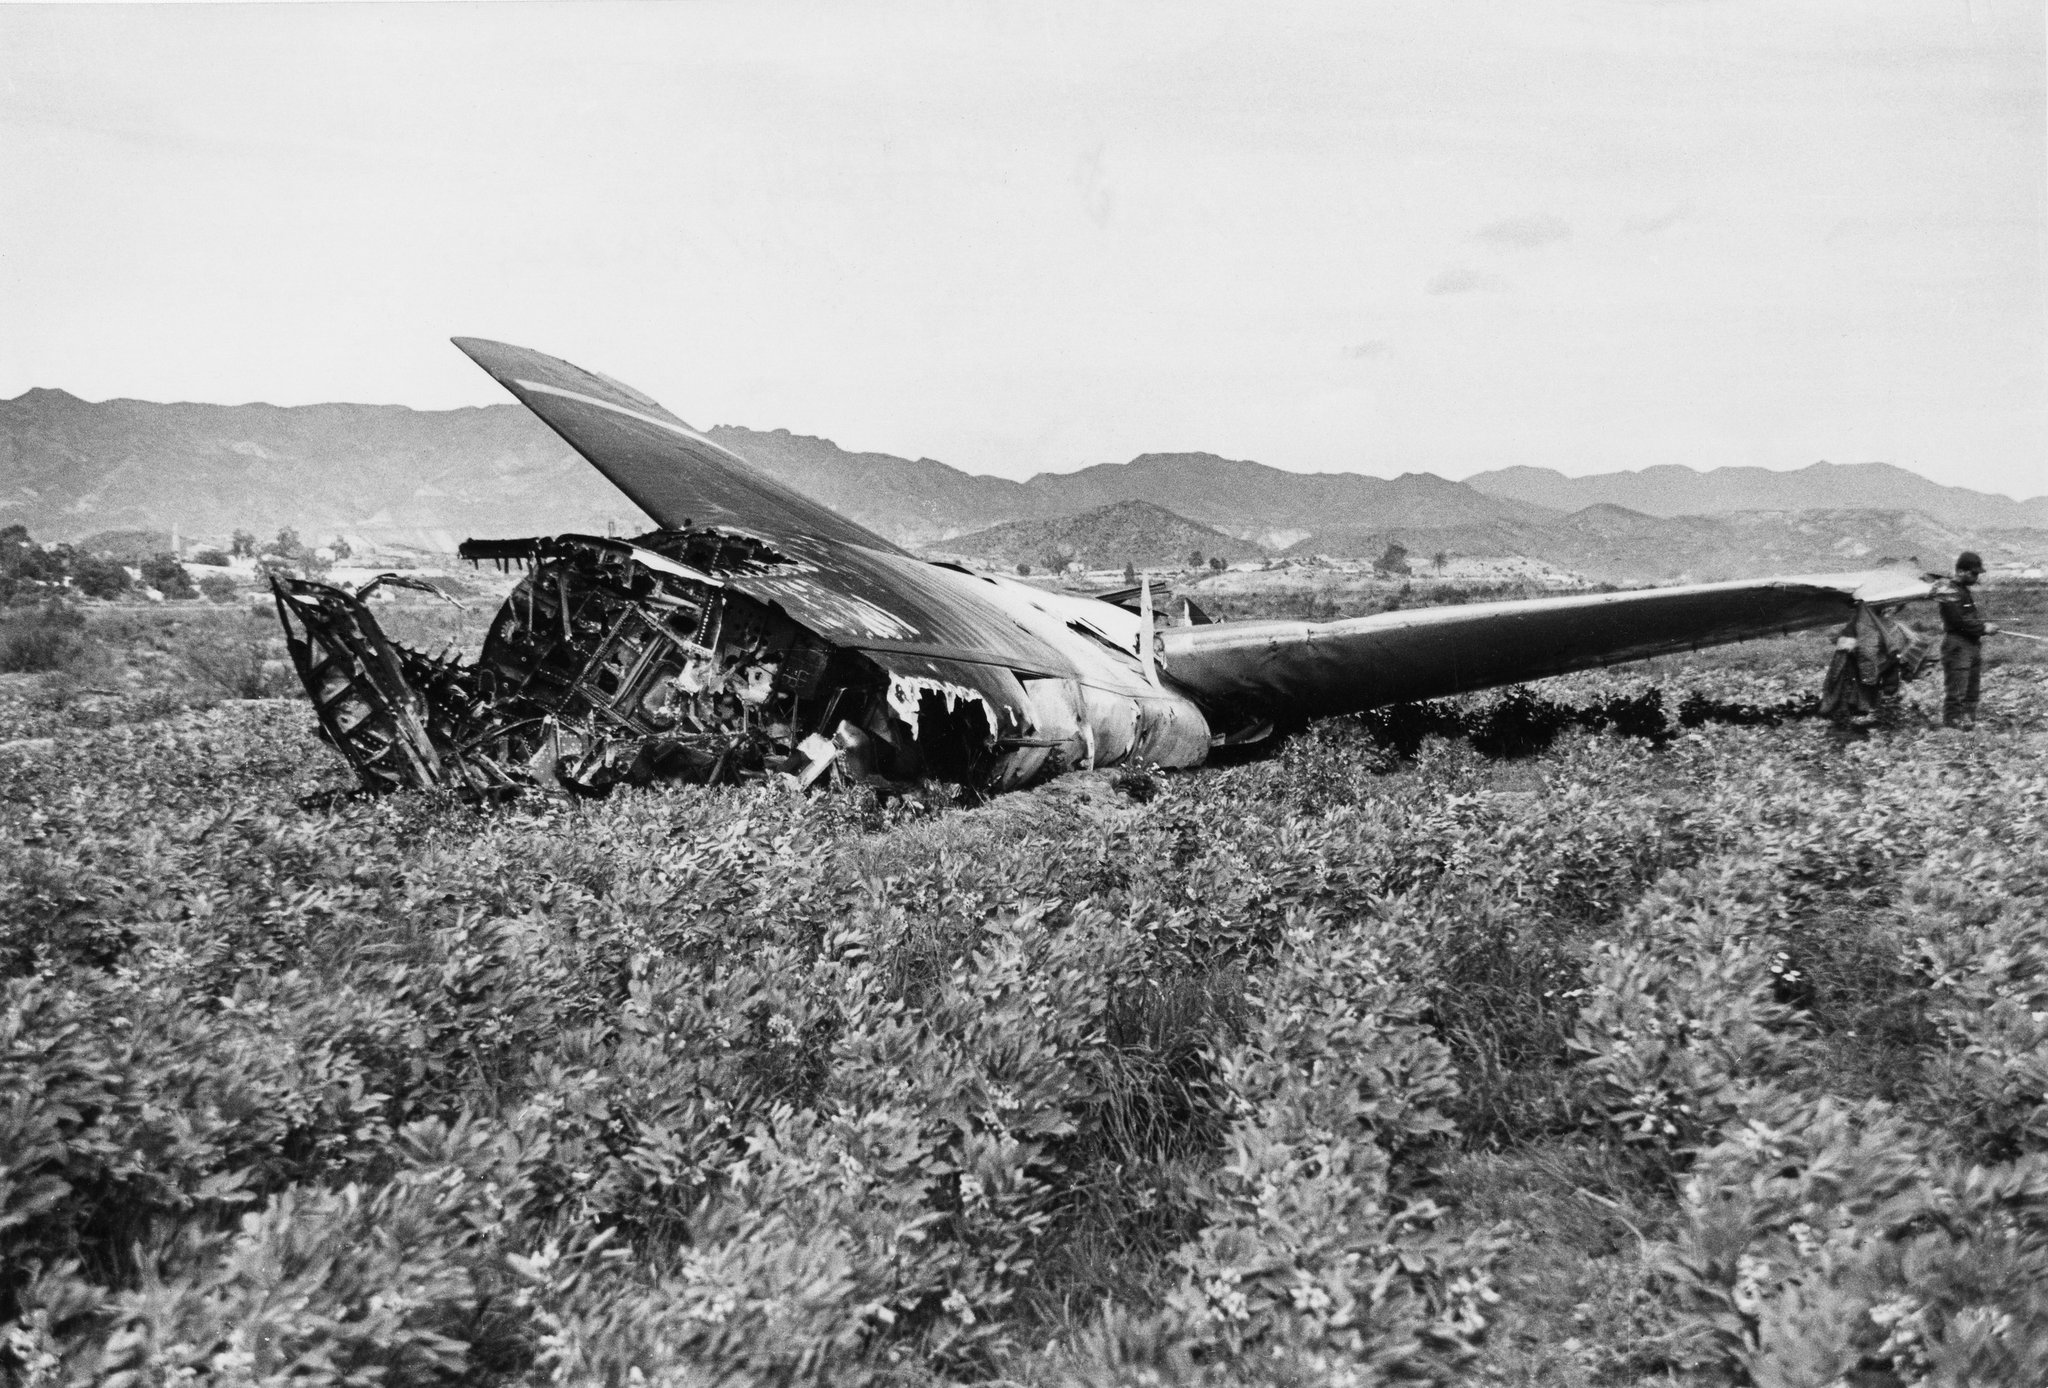 The United States Dropped 4 Nukes On Spain Accidentally